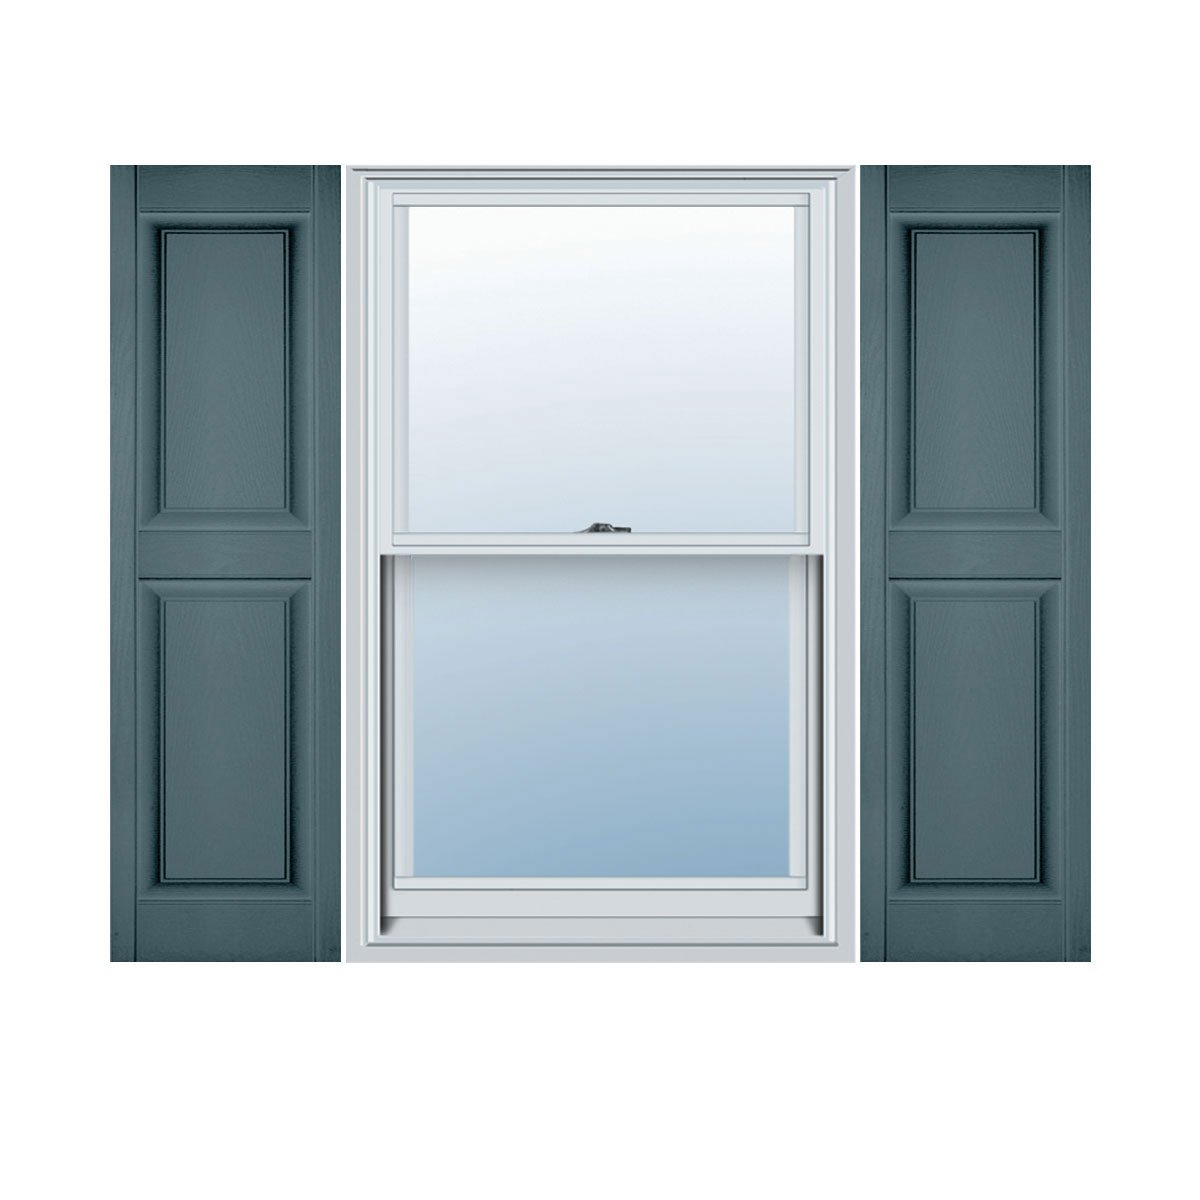 Per Pair 12W x 35H Wedgewood Blue Mid America 00021235004 Standard Size Williamsburg Double Panel Shutter